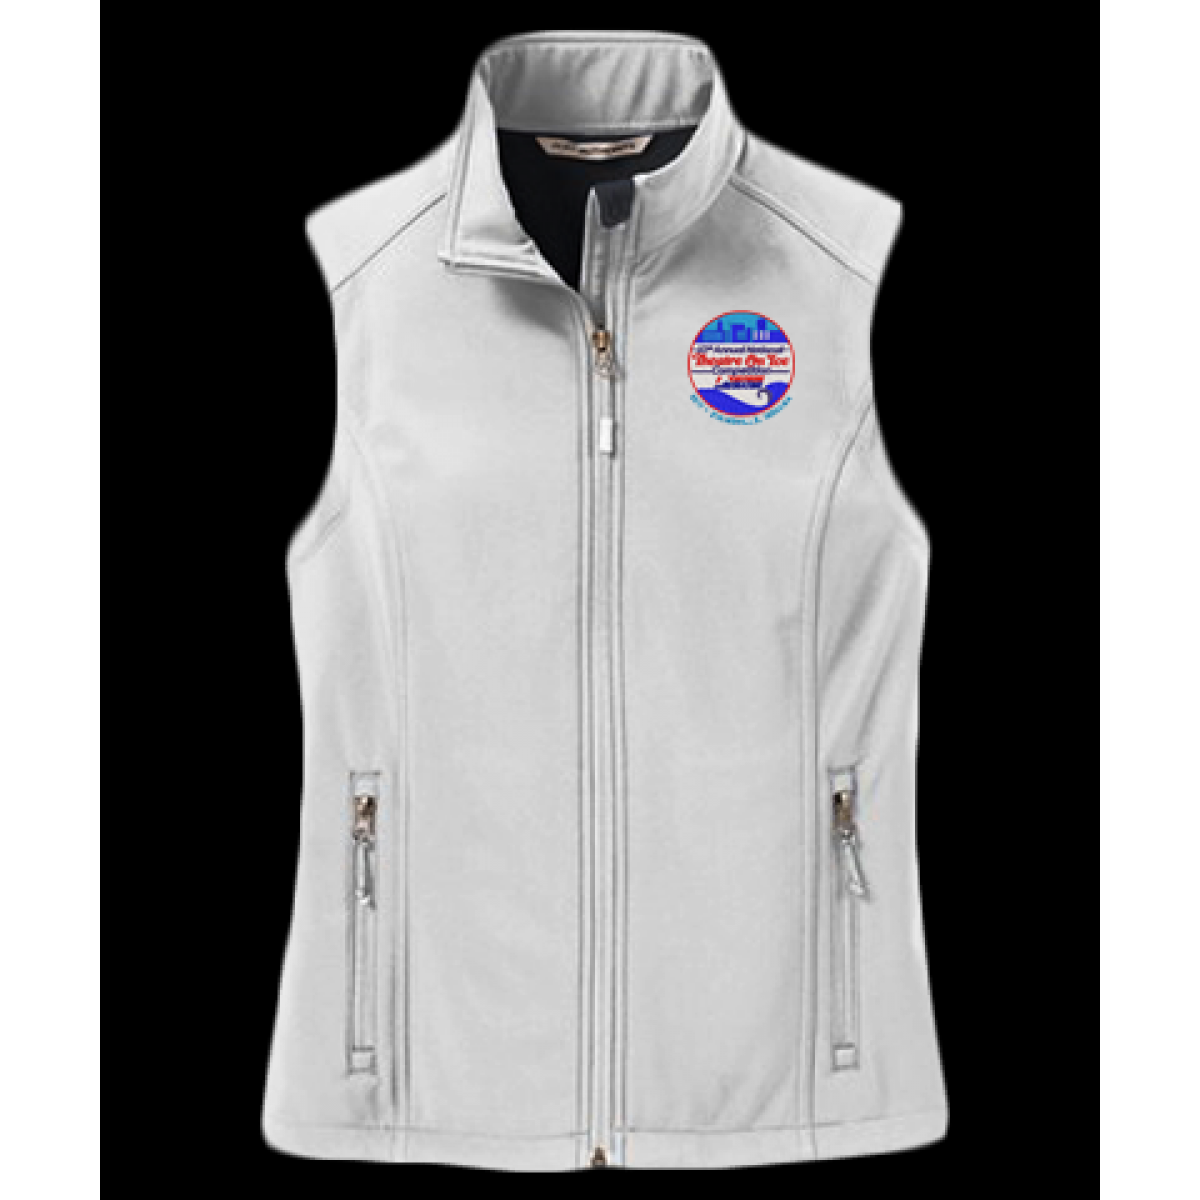 Embroidered Ladies Soft Shell Vest